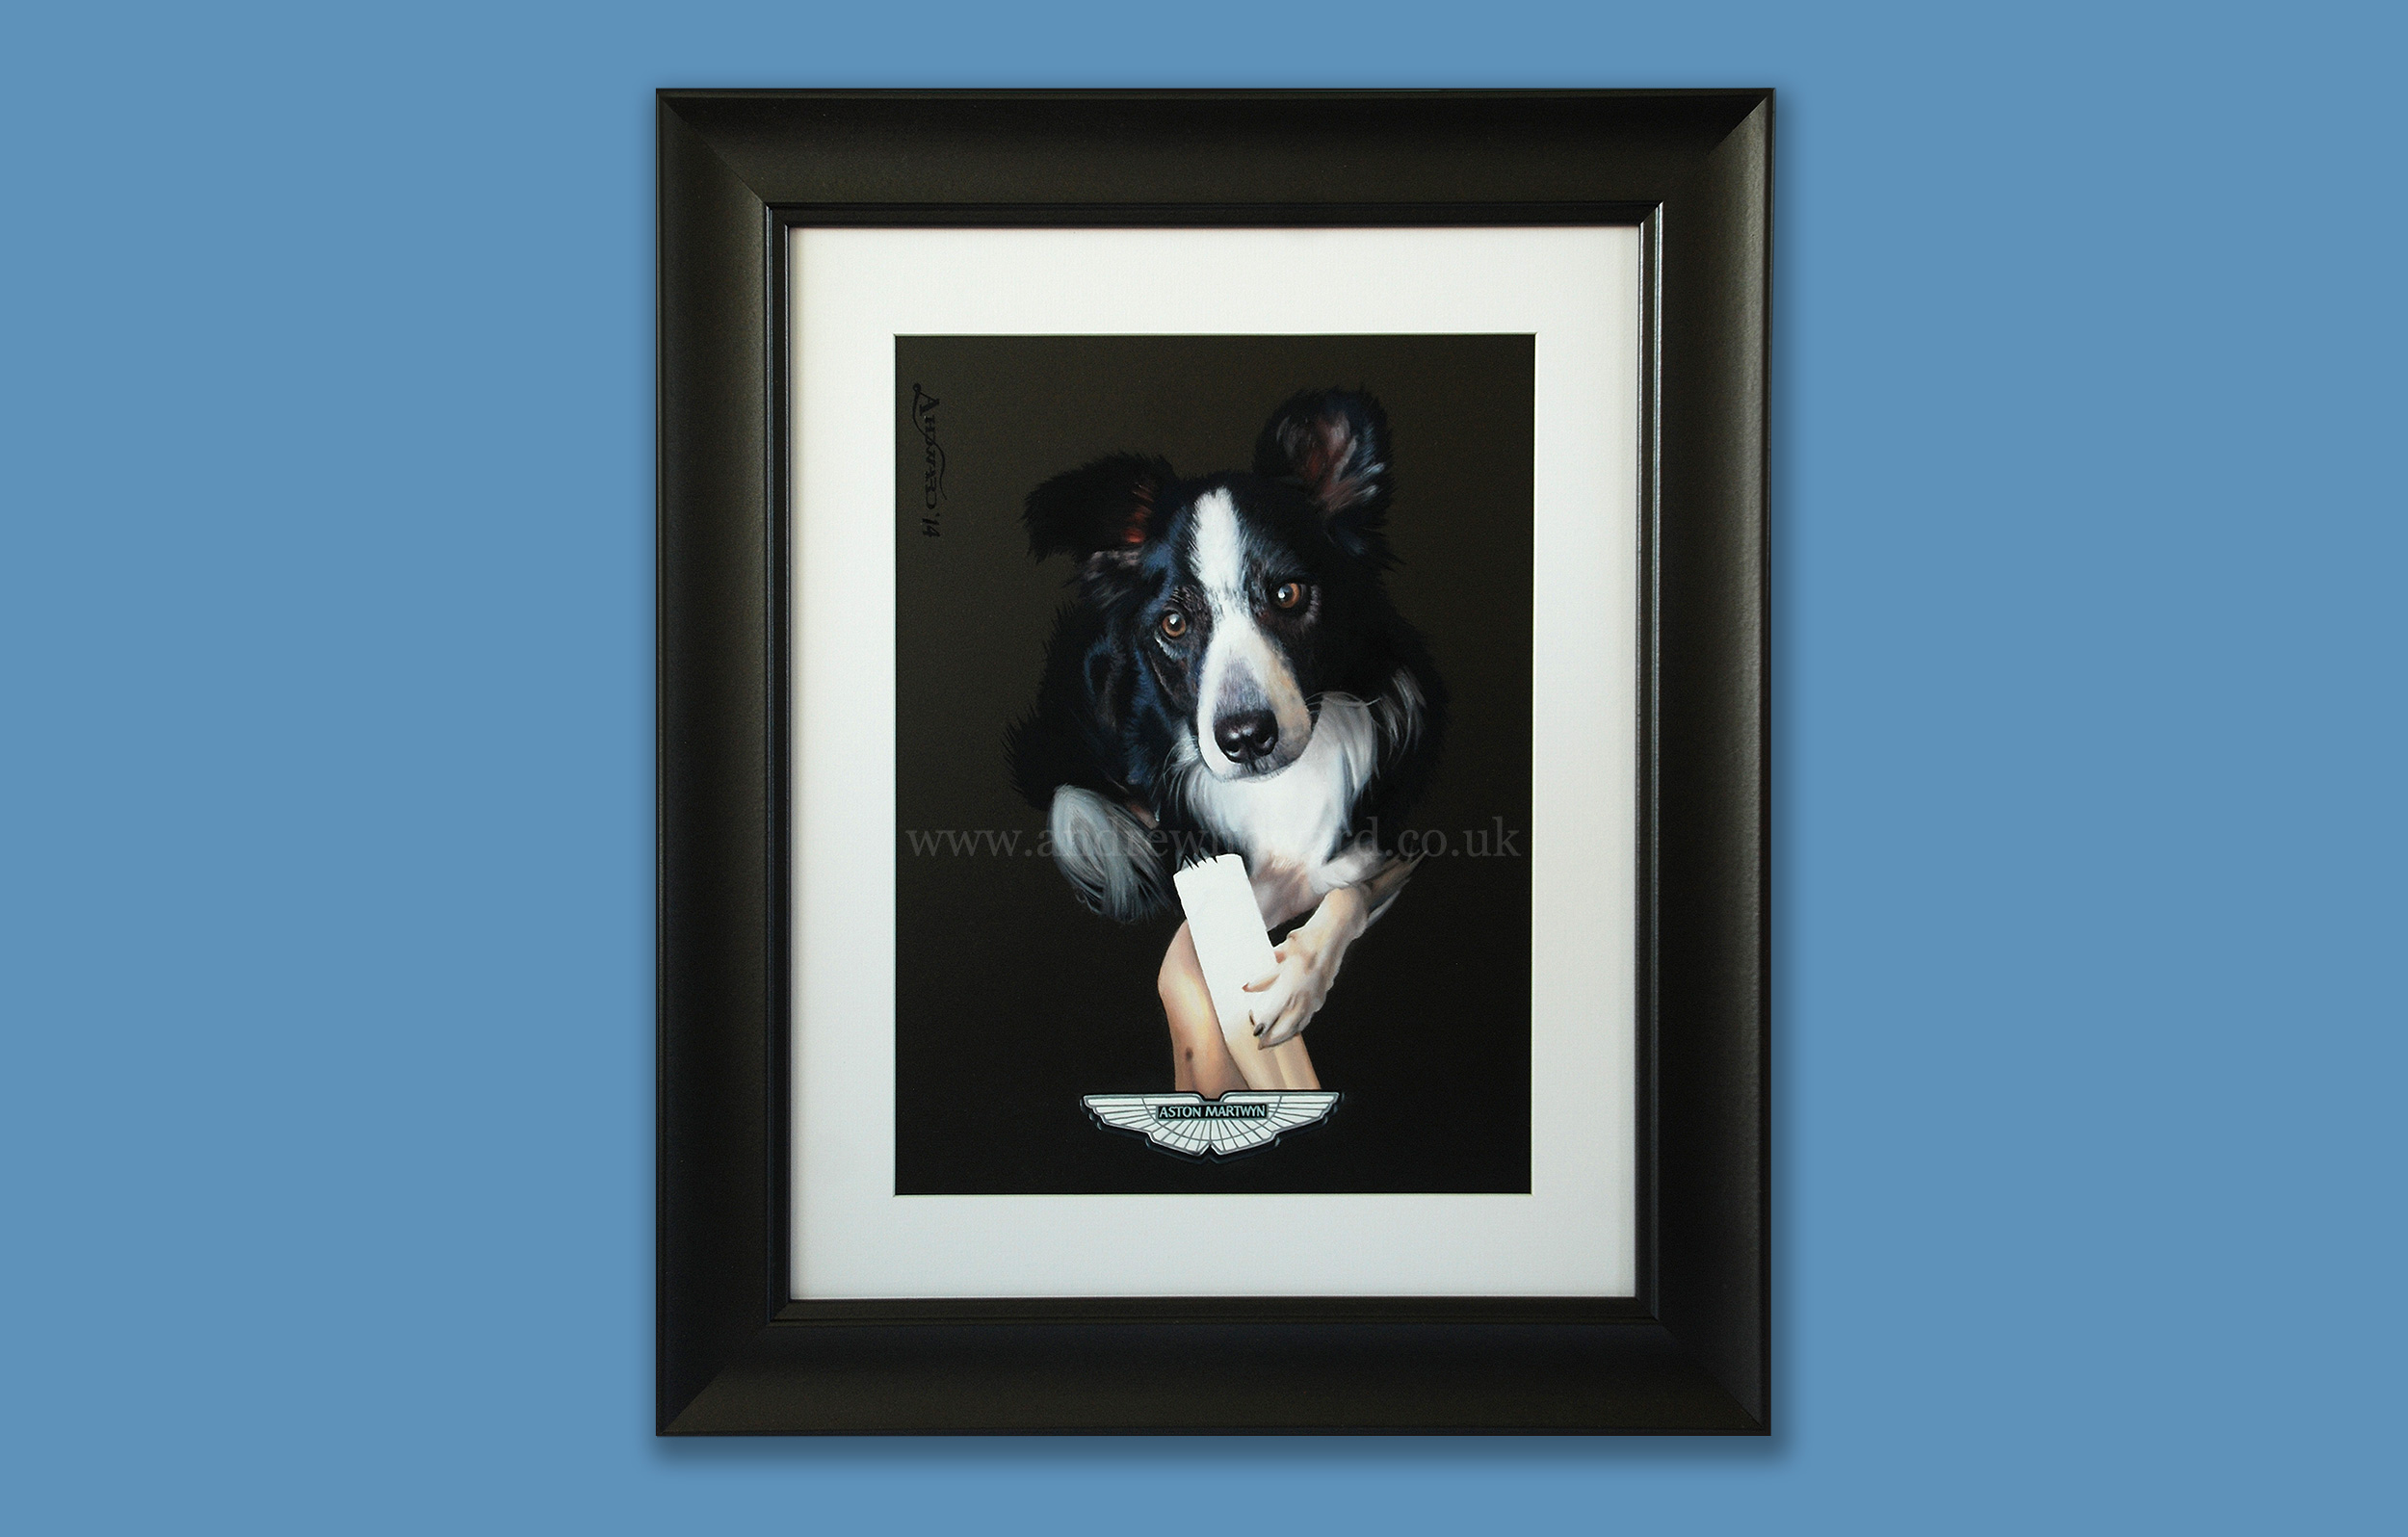 Andrew Howard Art - Aston Martin collie dog oil painting